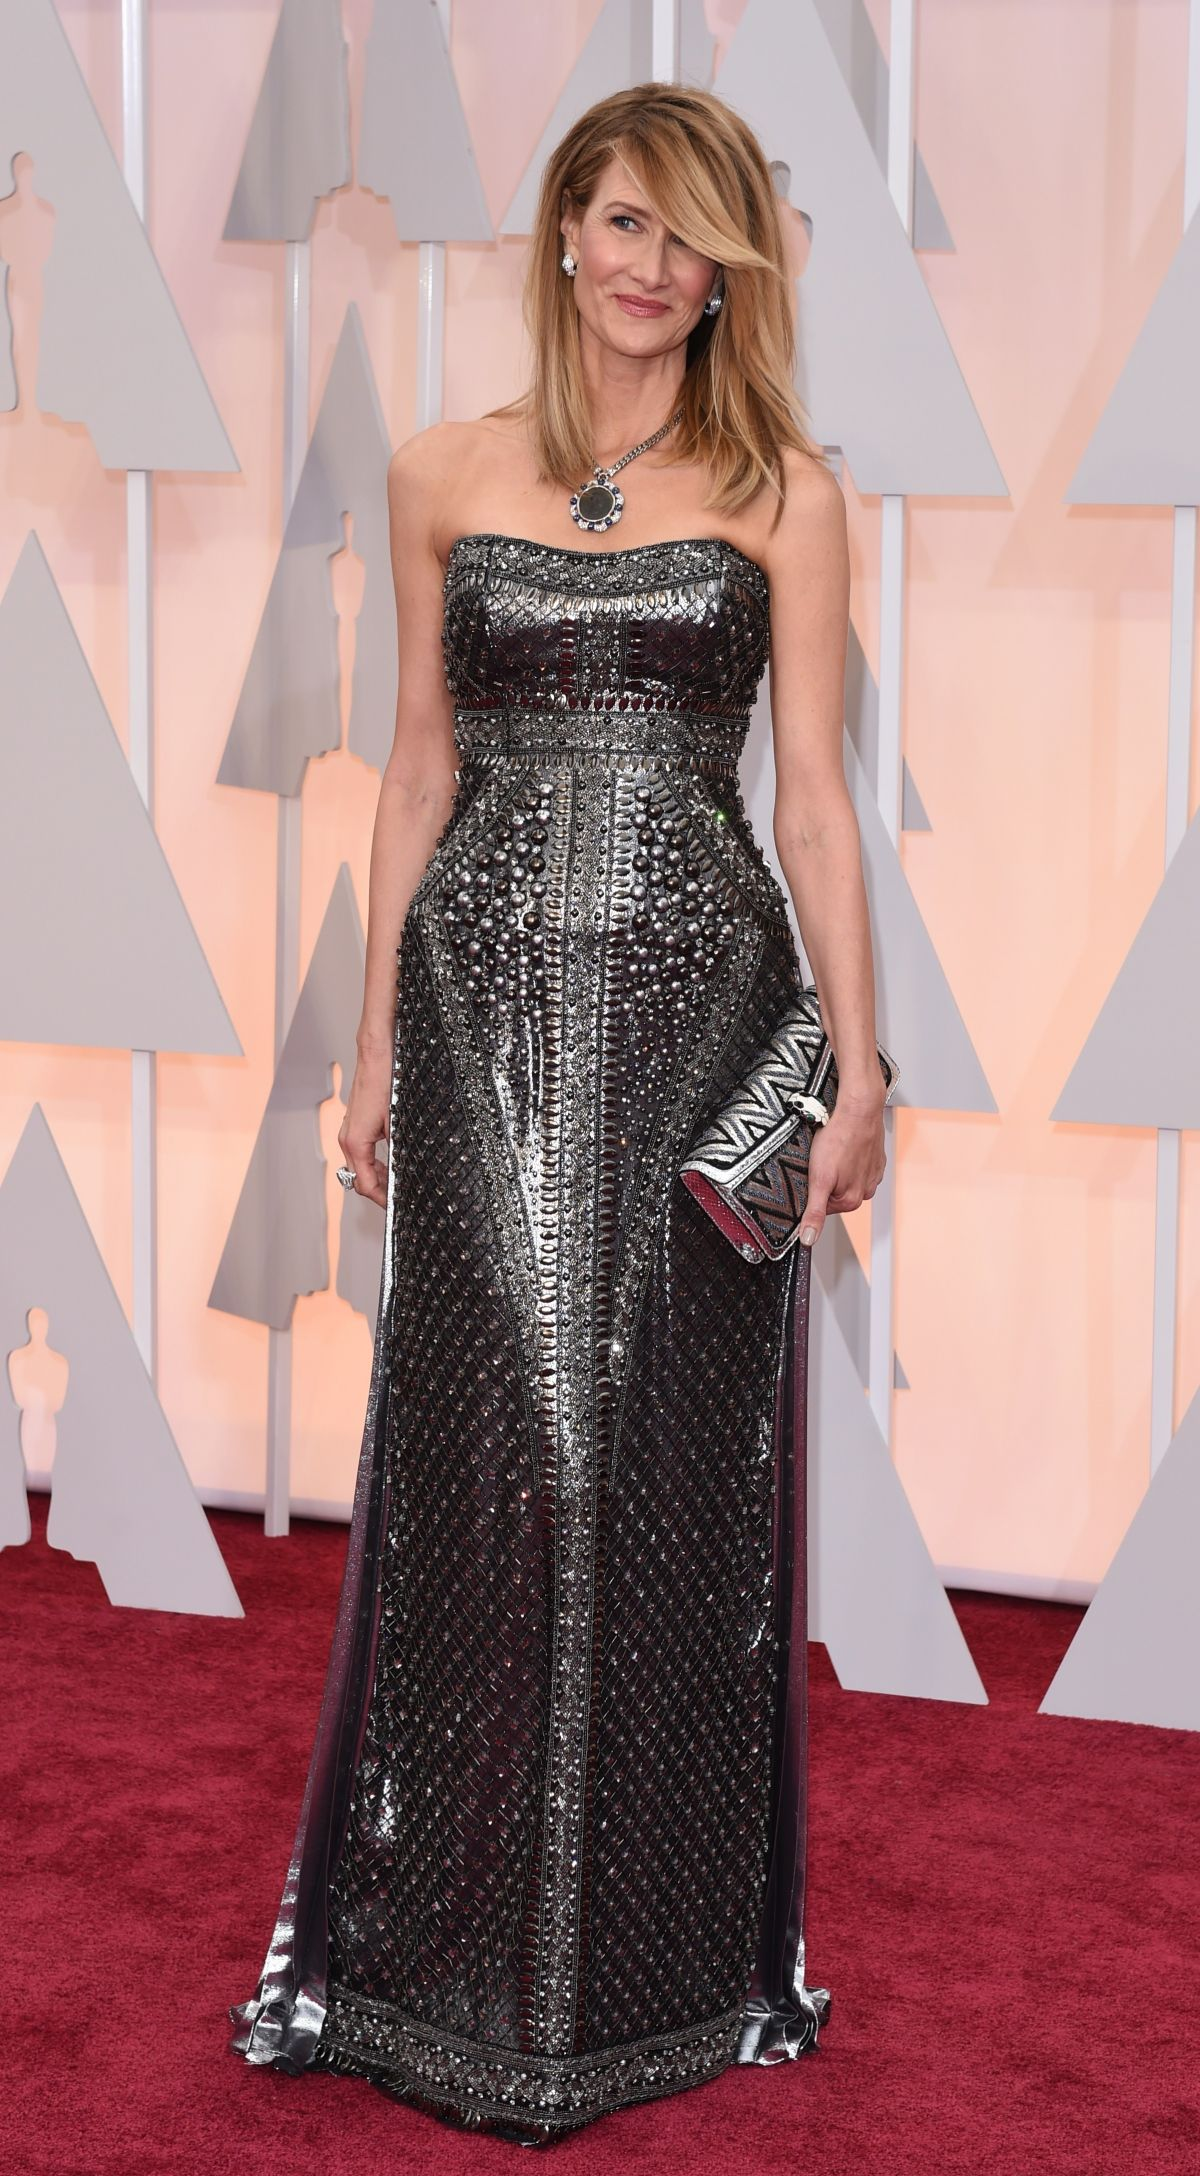 LAURA DERN at 87th Annual Academy Awards at the Dolby Theatre in Hollywood